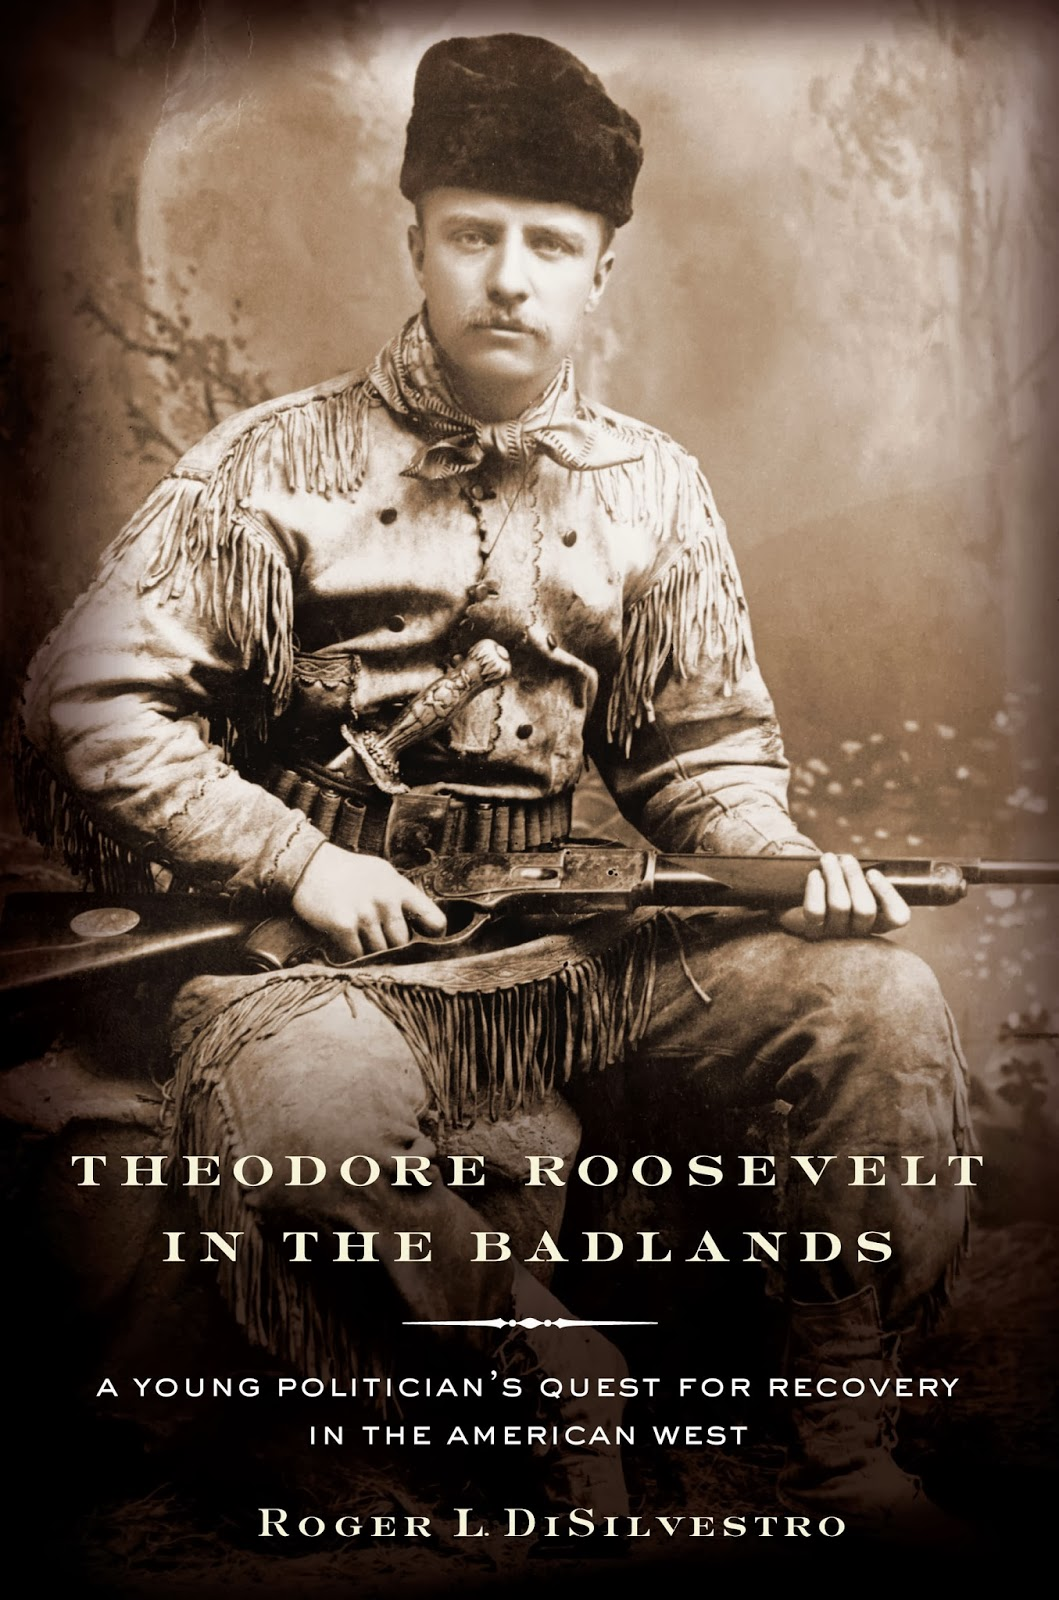 the life of theodore roosevelt as a hunter Theodore roosevelt hunter-conservationist reflects the zest for life that was so powerfully characteristic of tr for decades, roosevelt's big game hunting books have.